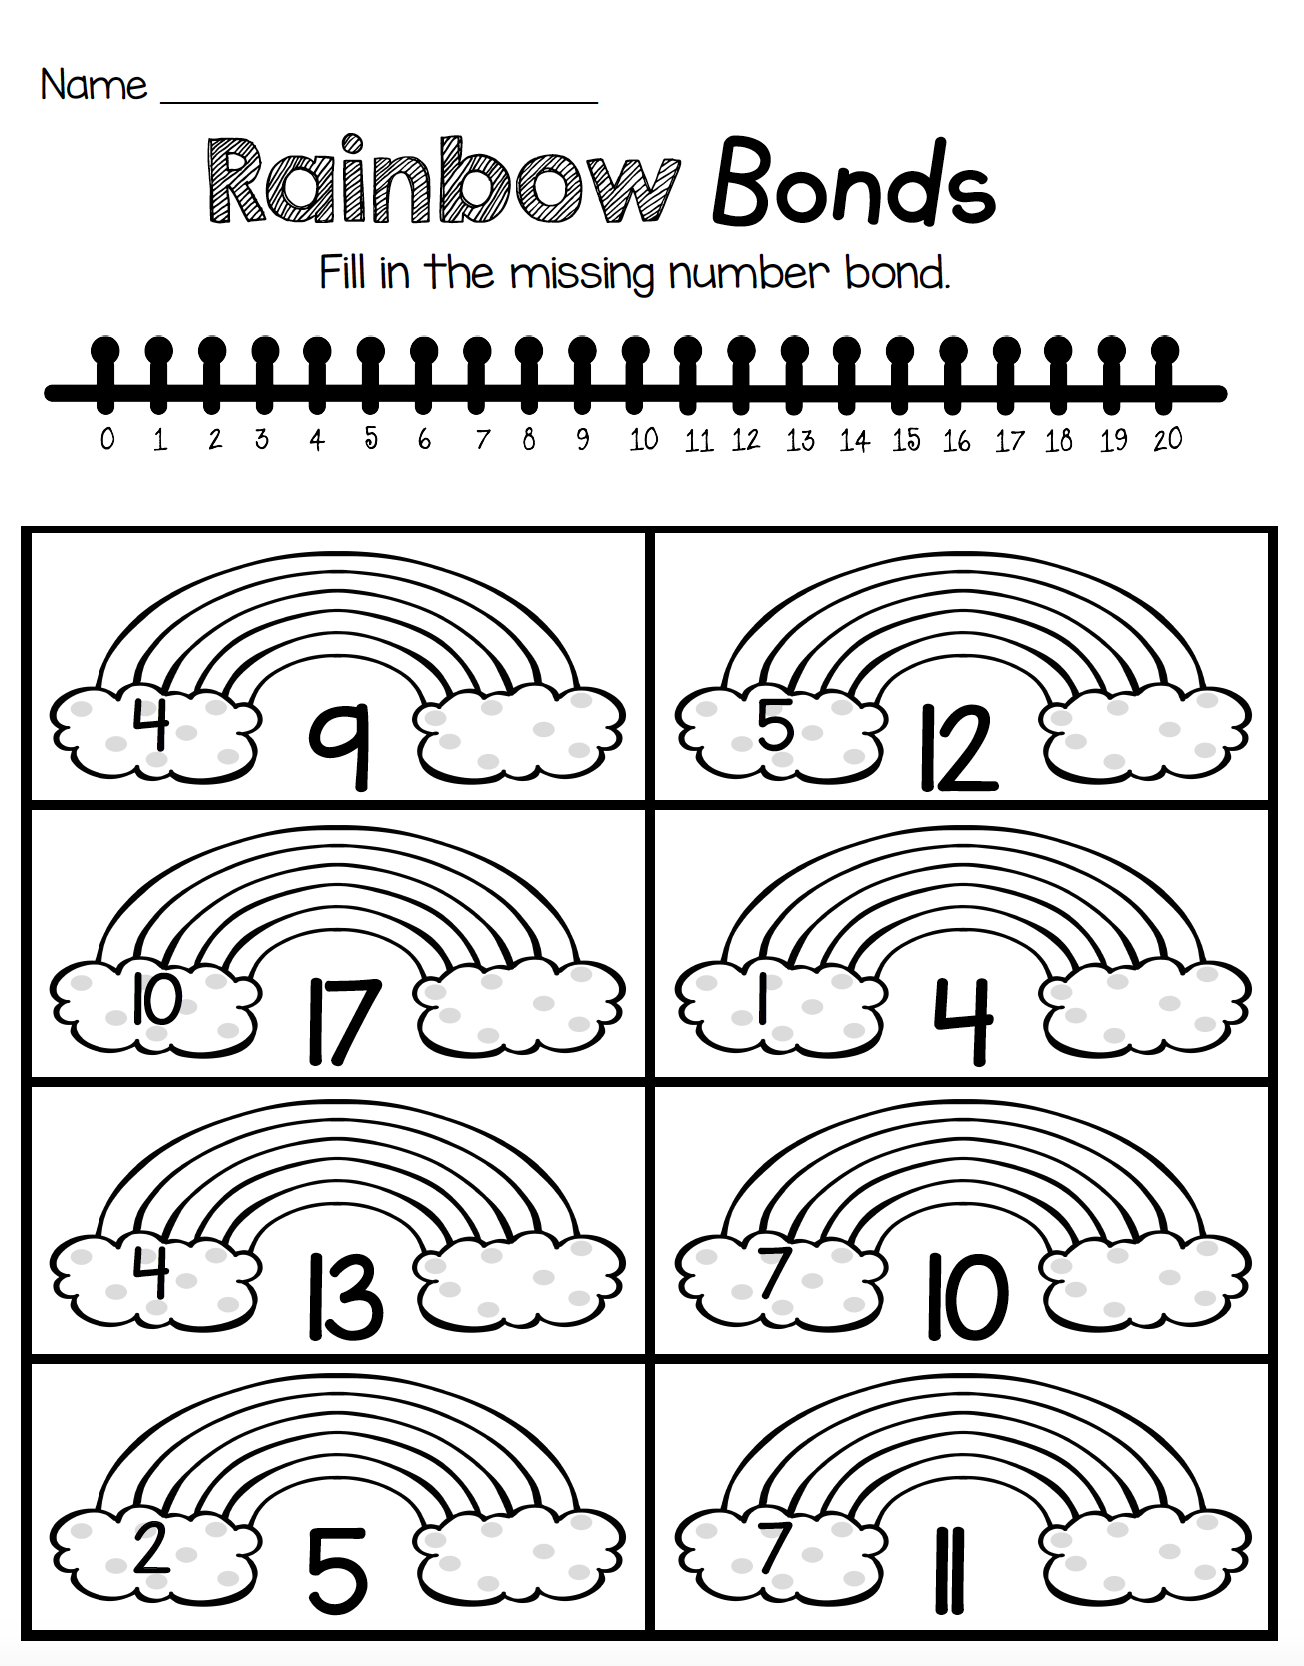 Kindergarten St Patrick S Day Activities March Math And Reading Worksheets Number Bonds Worksheets Number Bonds Kindergarten Number Bond [ 1666 x 1304 Pixel ]